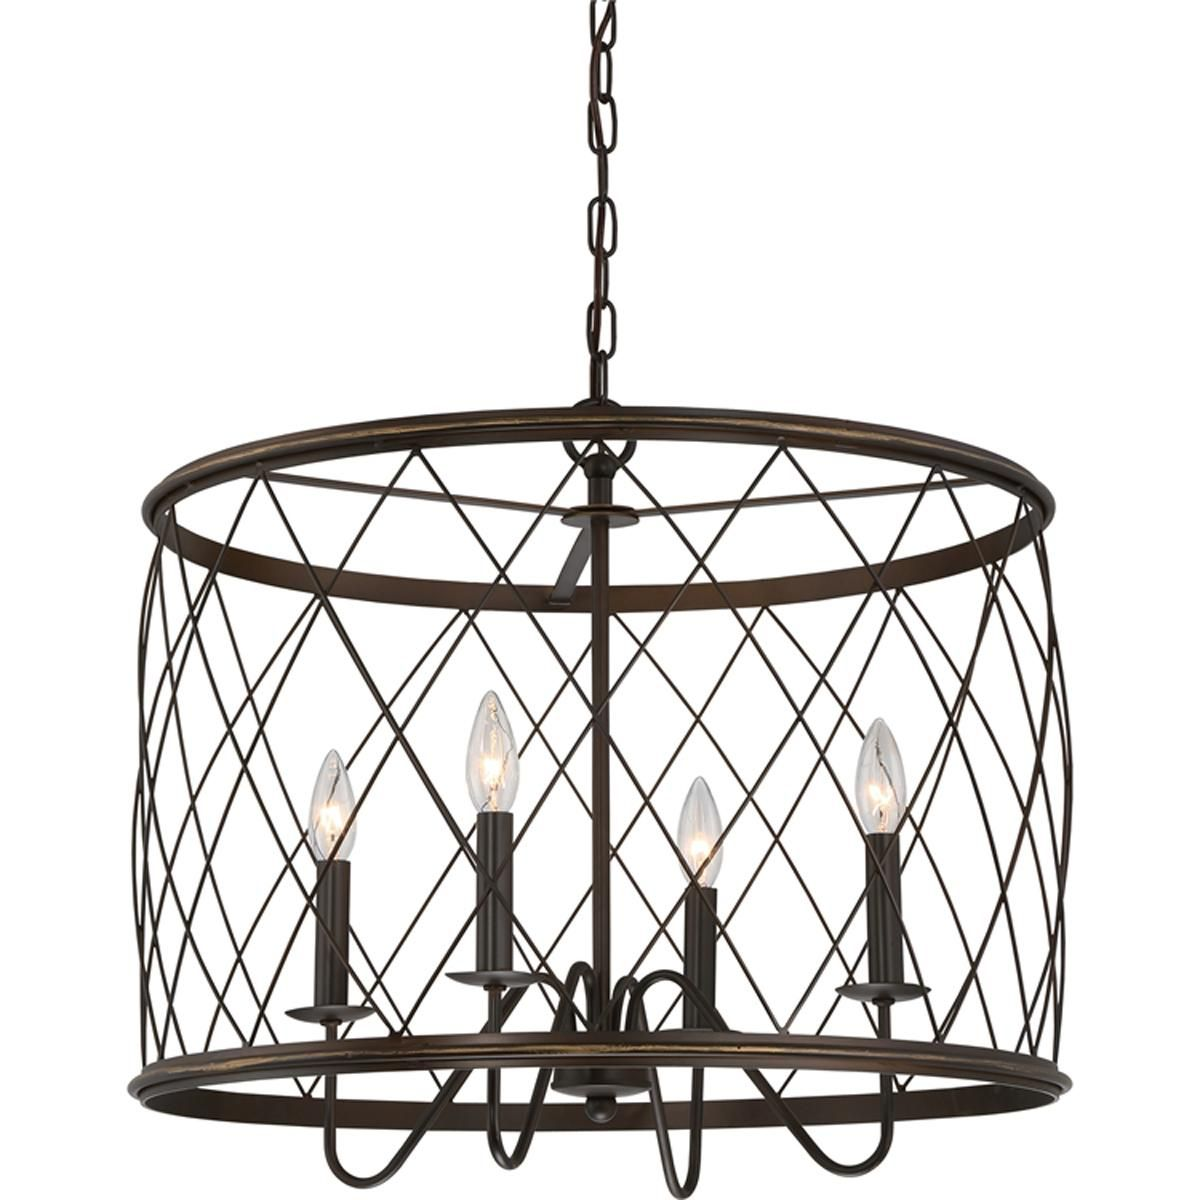 shop joss u0026 main for your ursula pendant dury with palladian bronze finish pendant with 4 lights european in design yet versatile in appeal